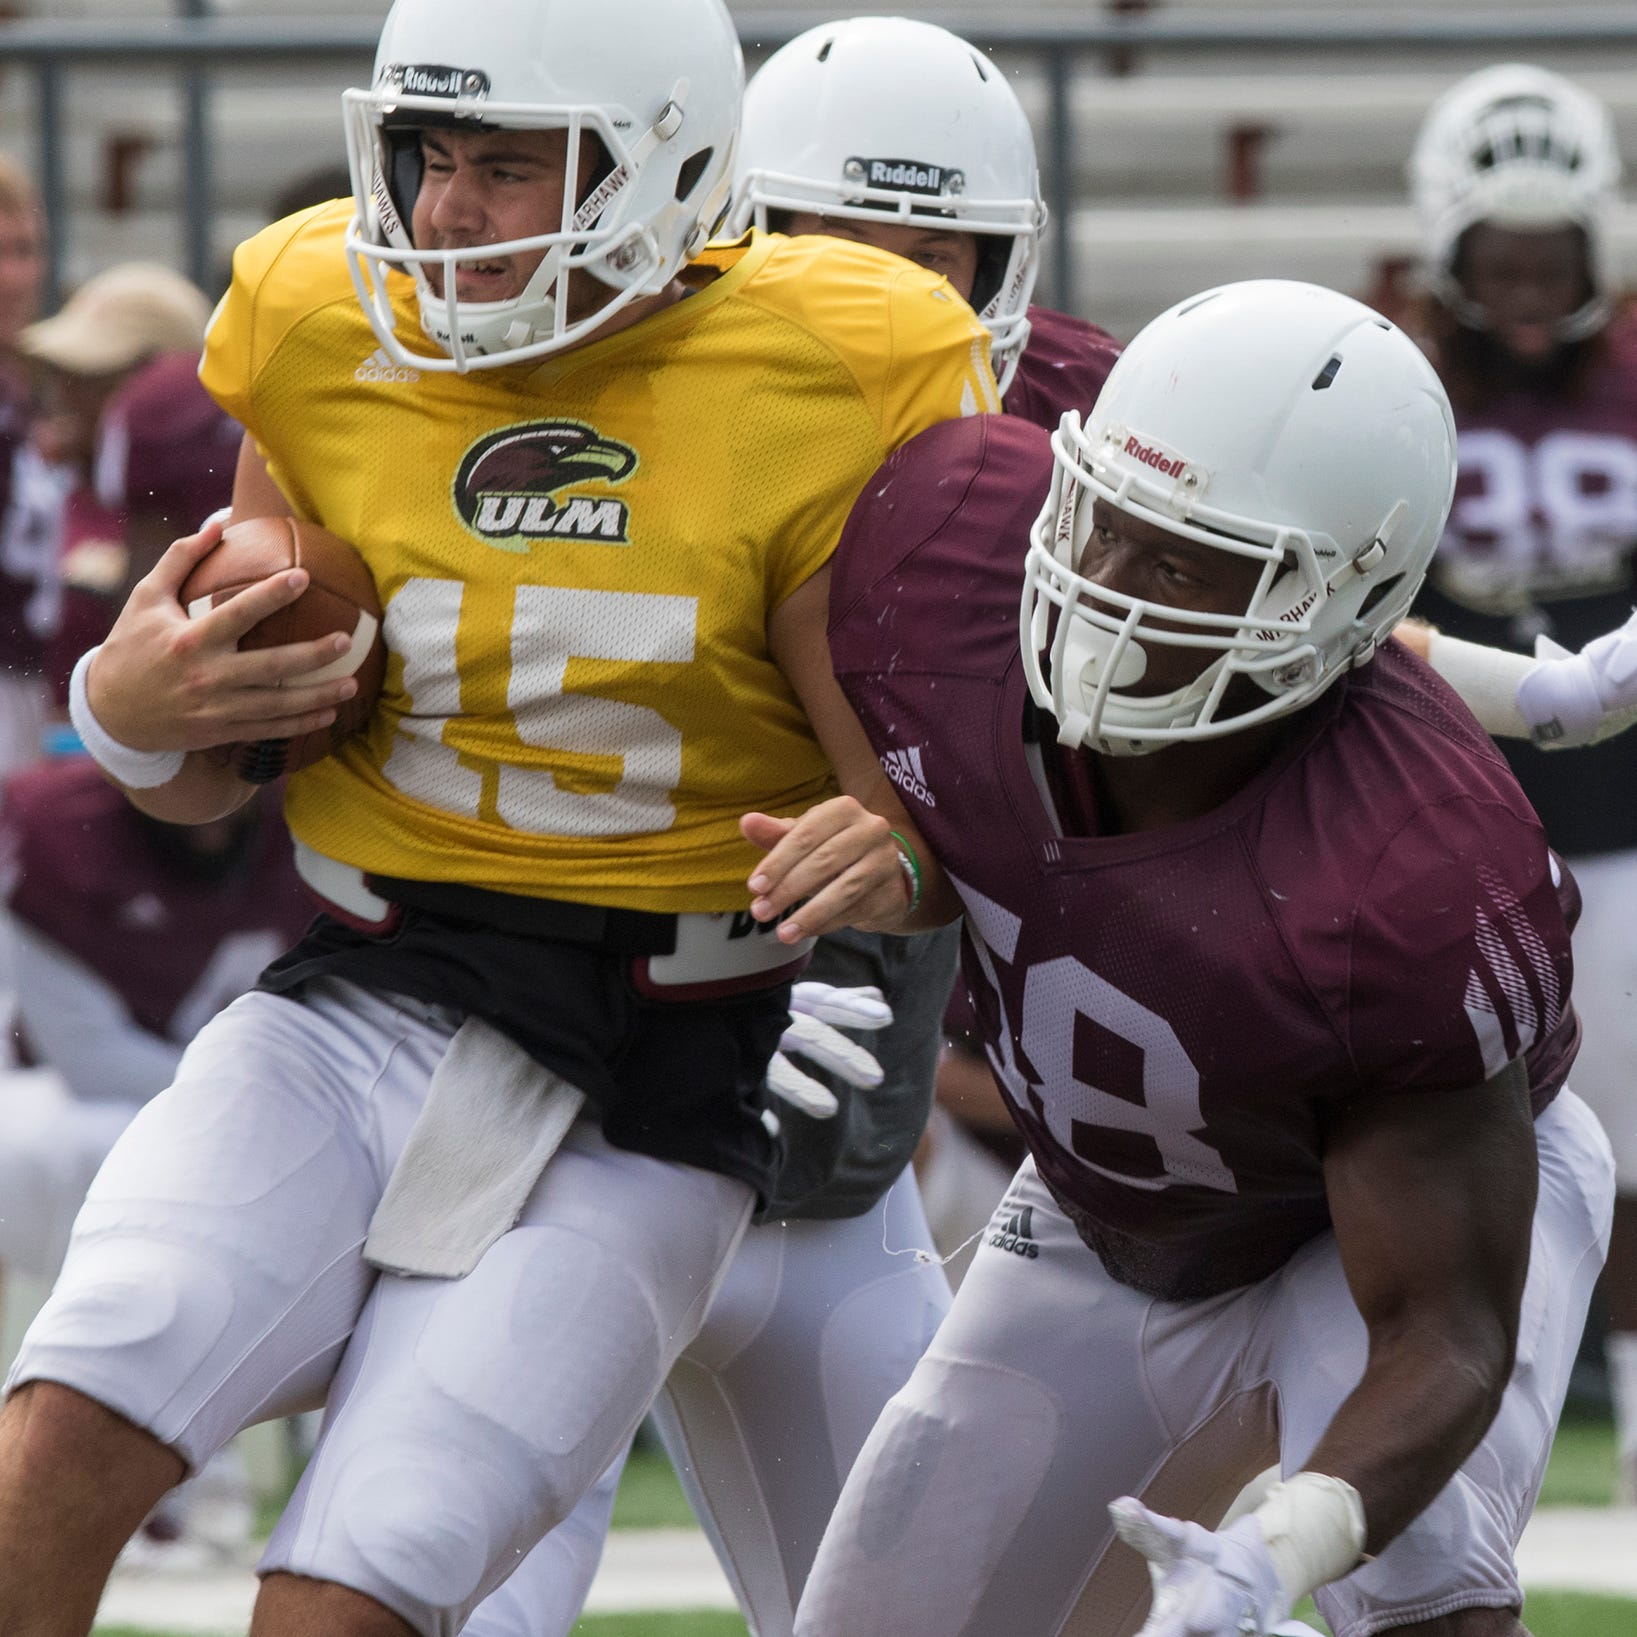 Backup QBs nab spotlight in ULM's first scrimmage